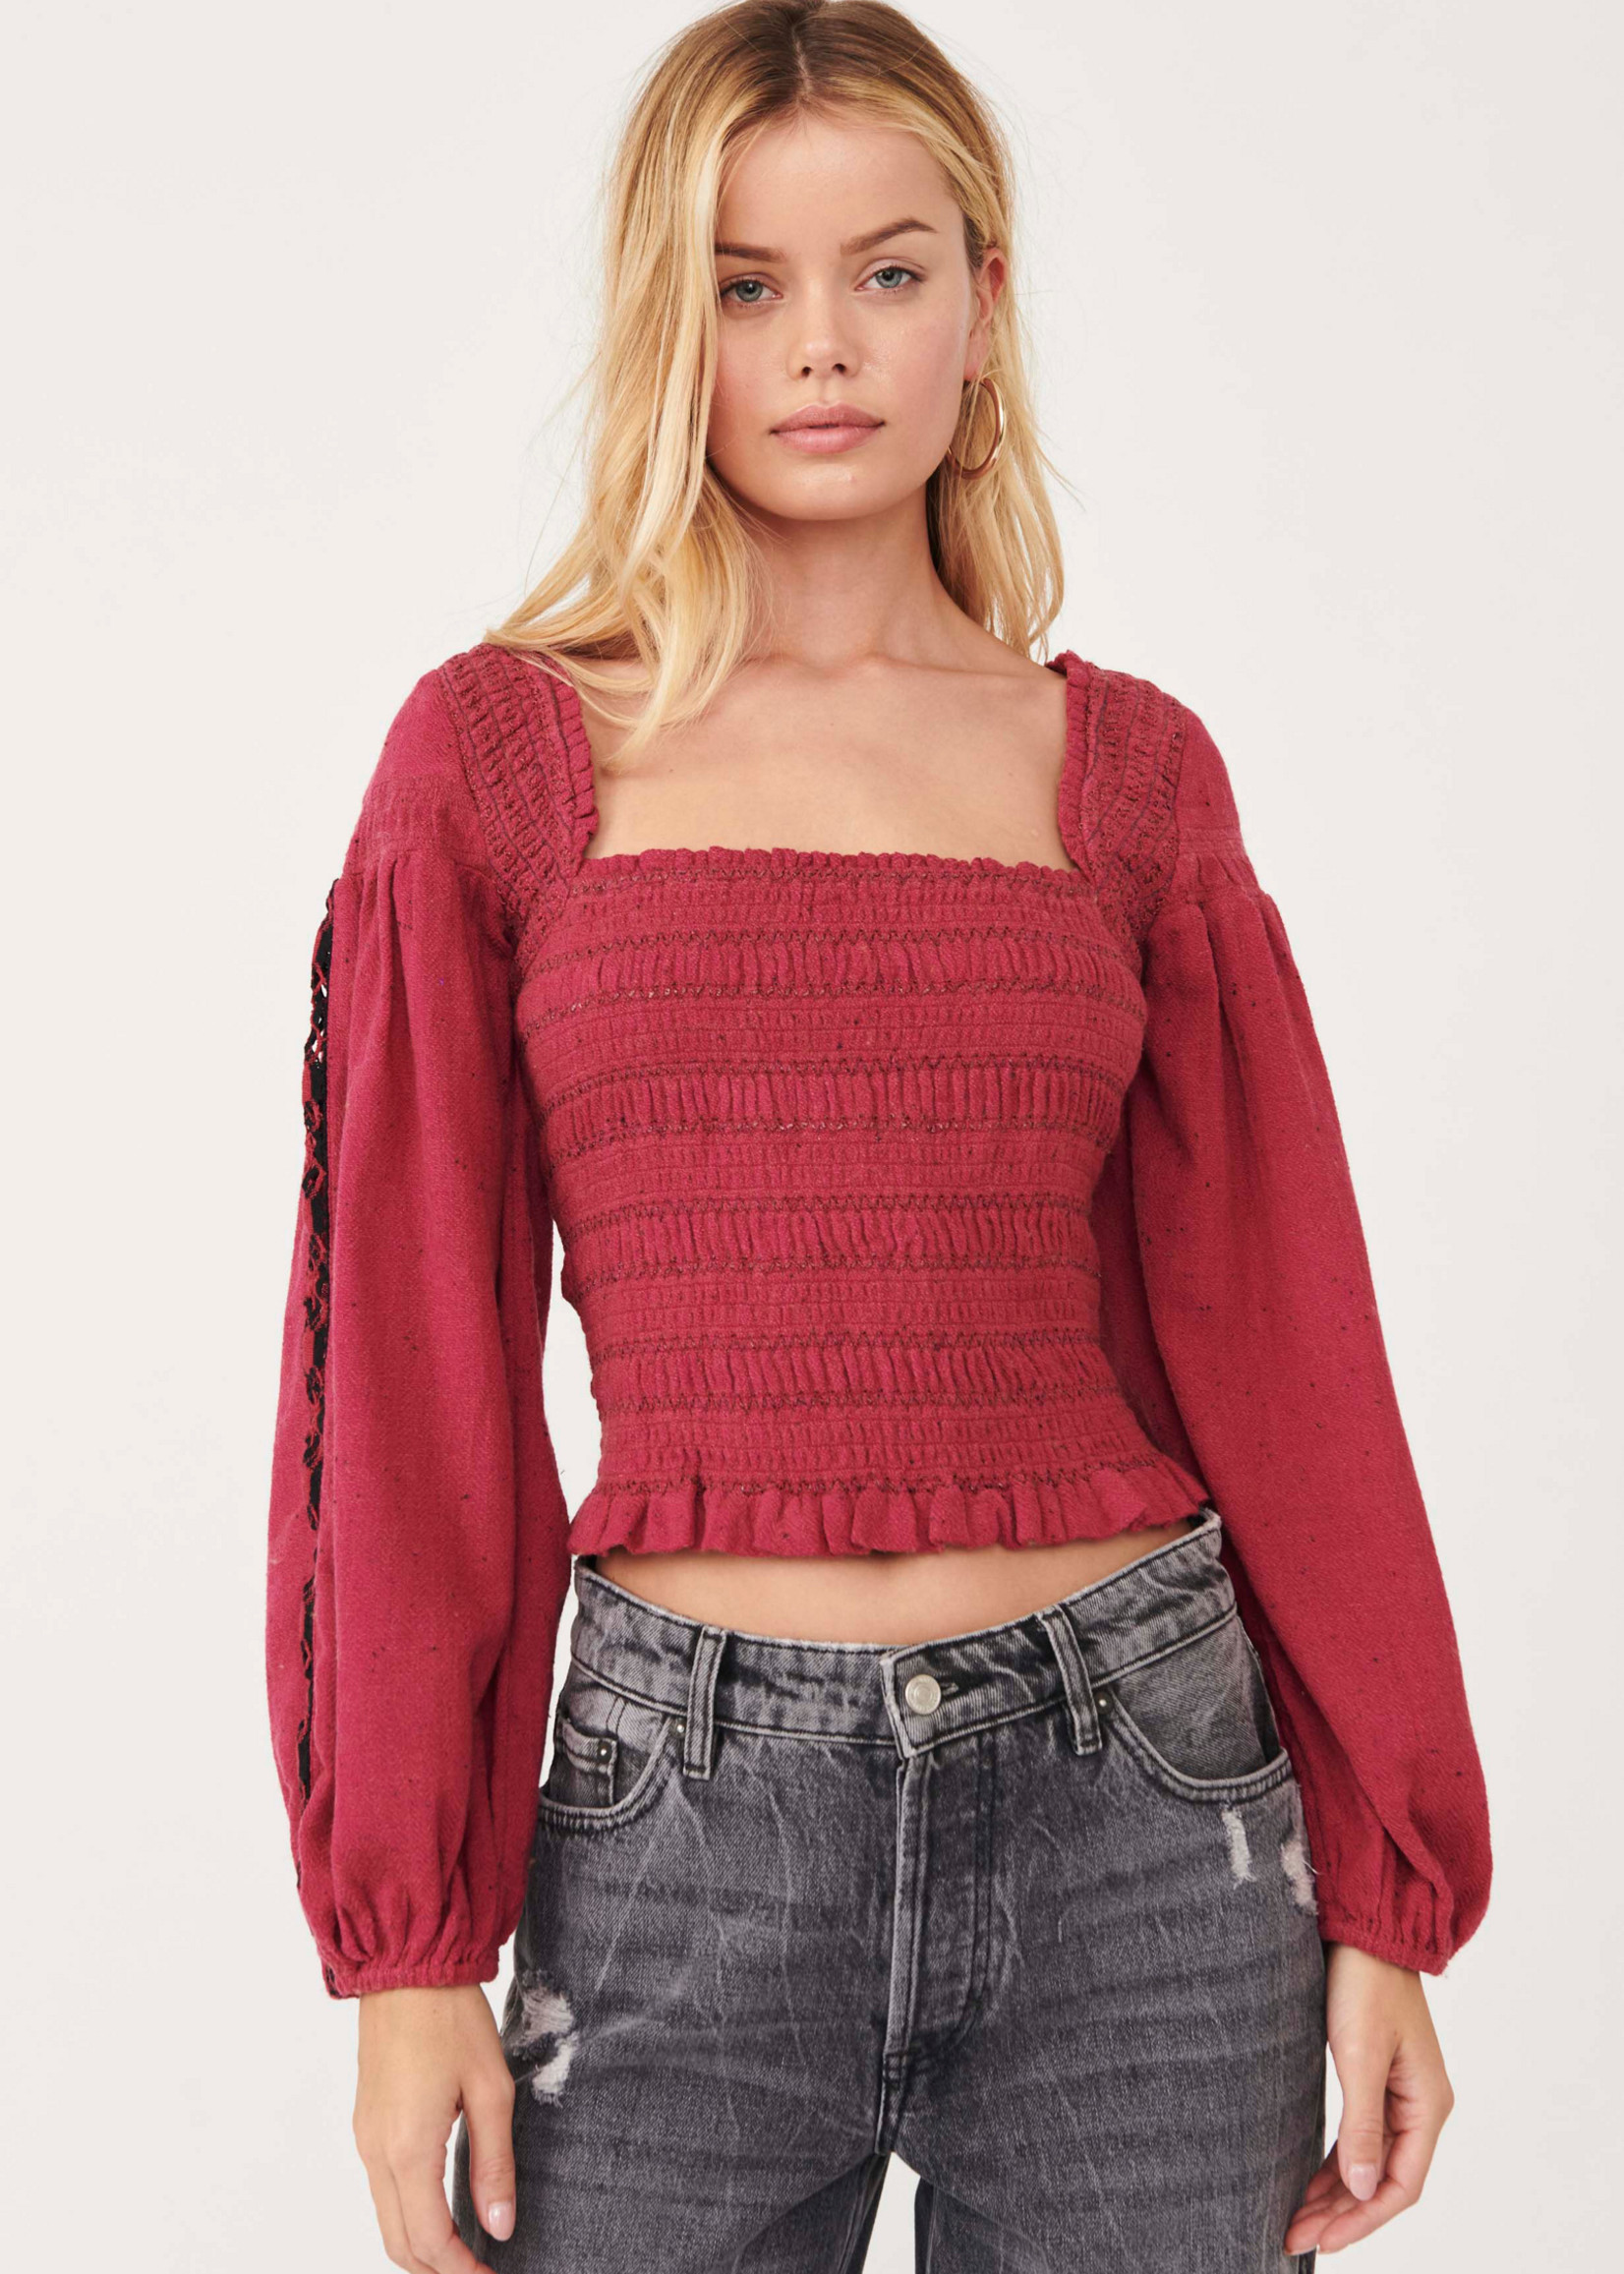 Free People Maggie Embroidered Top